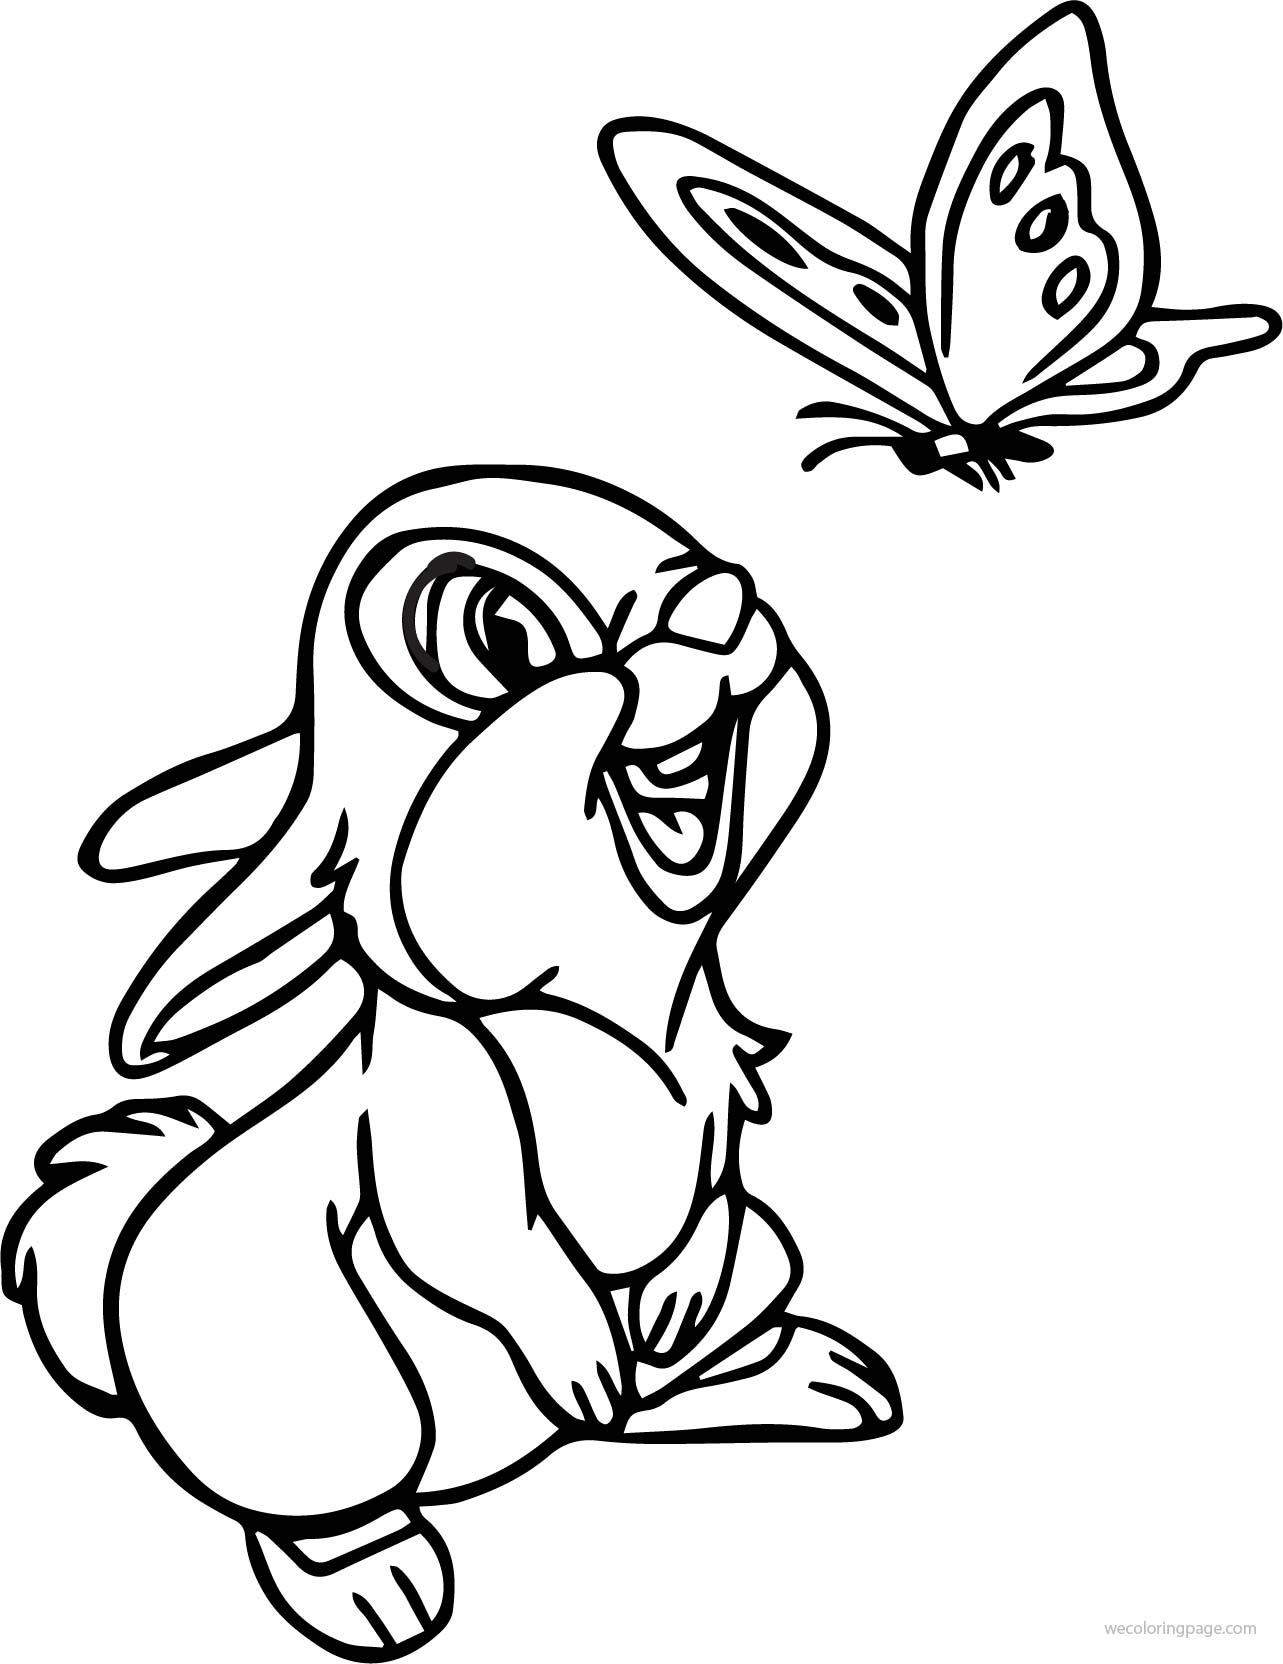 butterfly coloring pages - disney bambi thumper bunny see butterfly cartoon coloring page